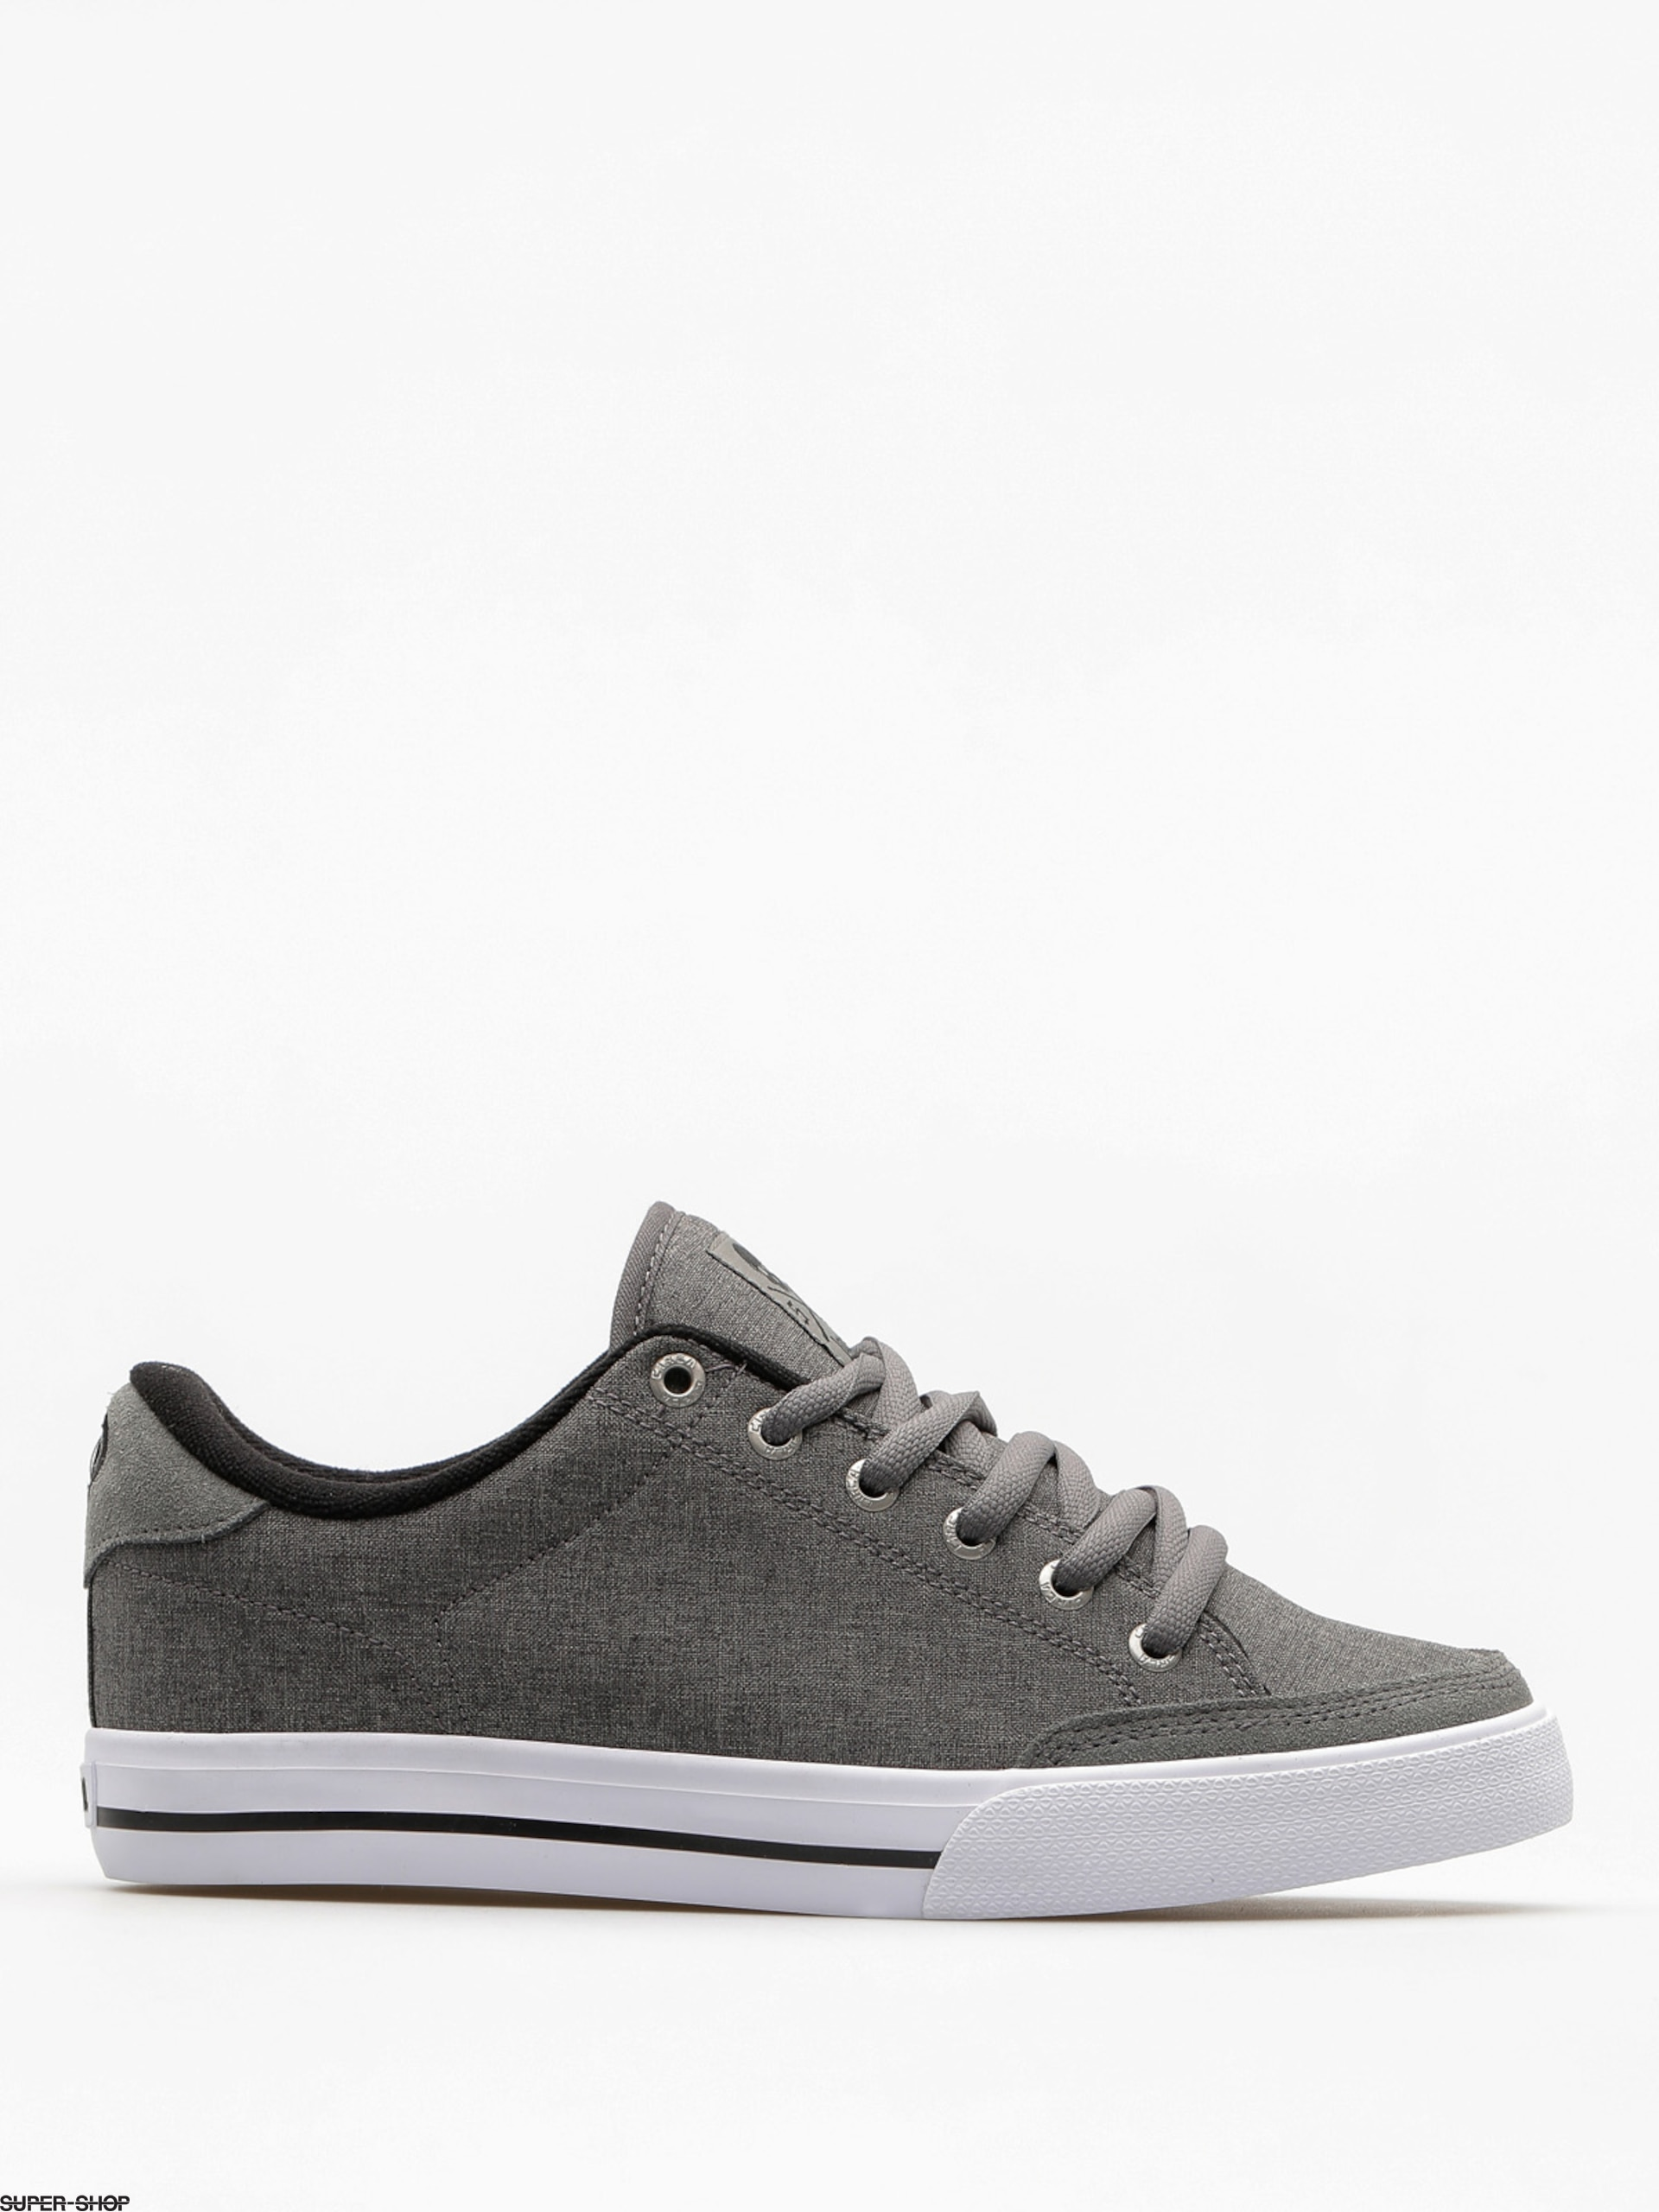 Circa Shoes Lopez 50 (charcoal/white)